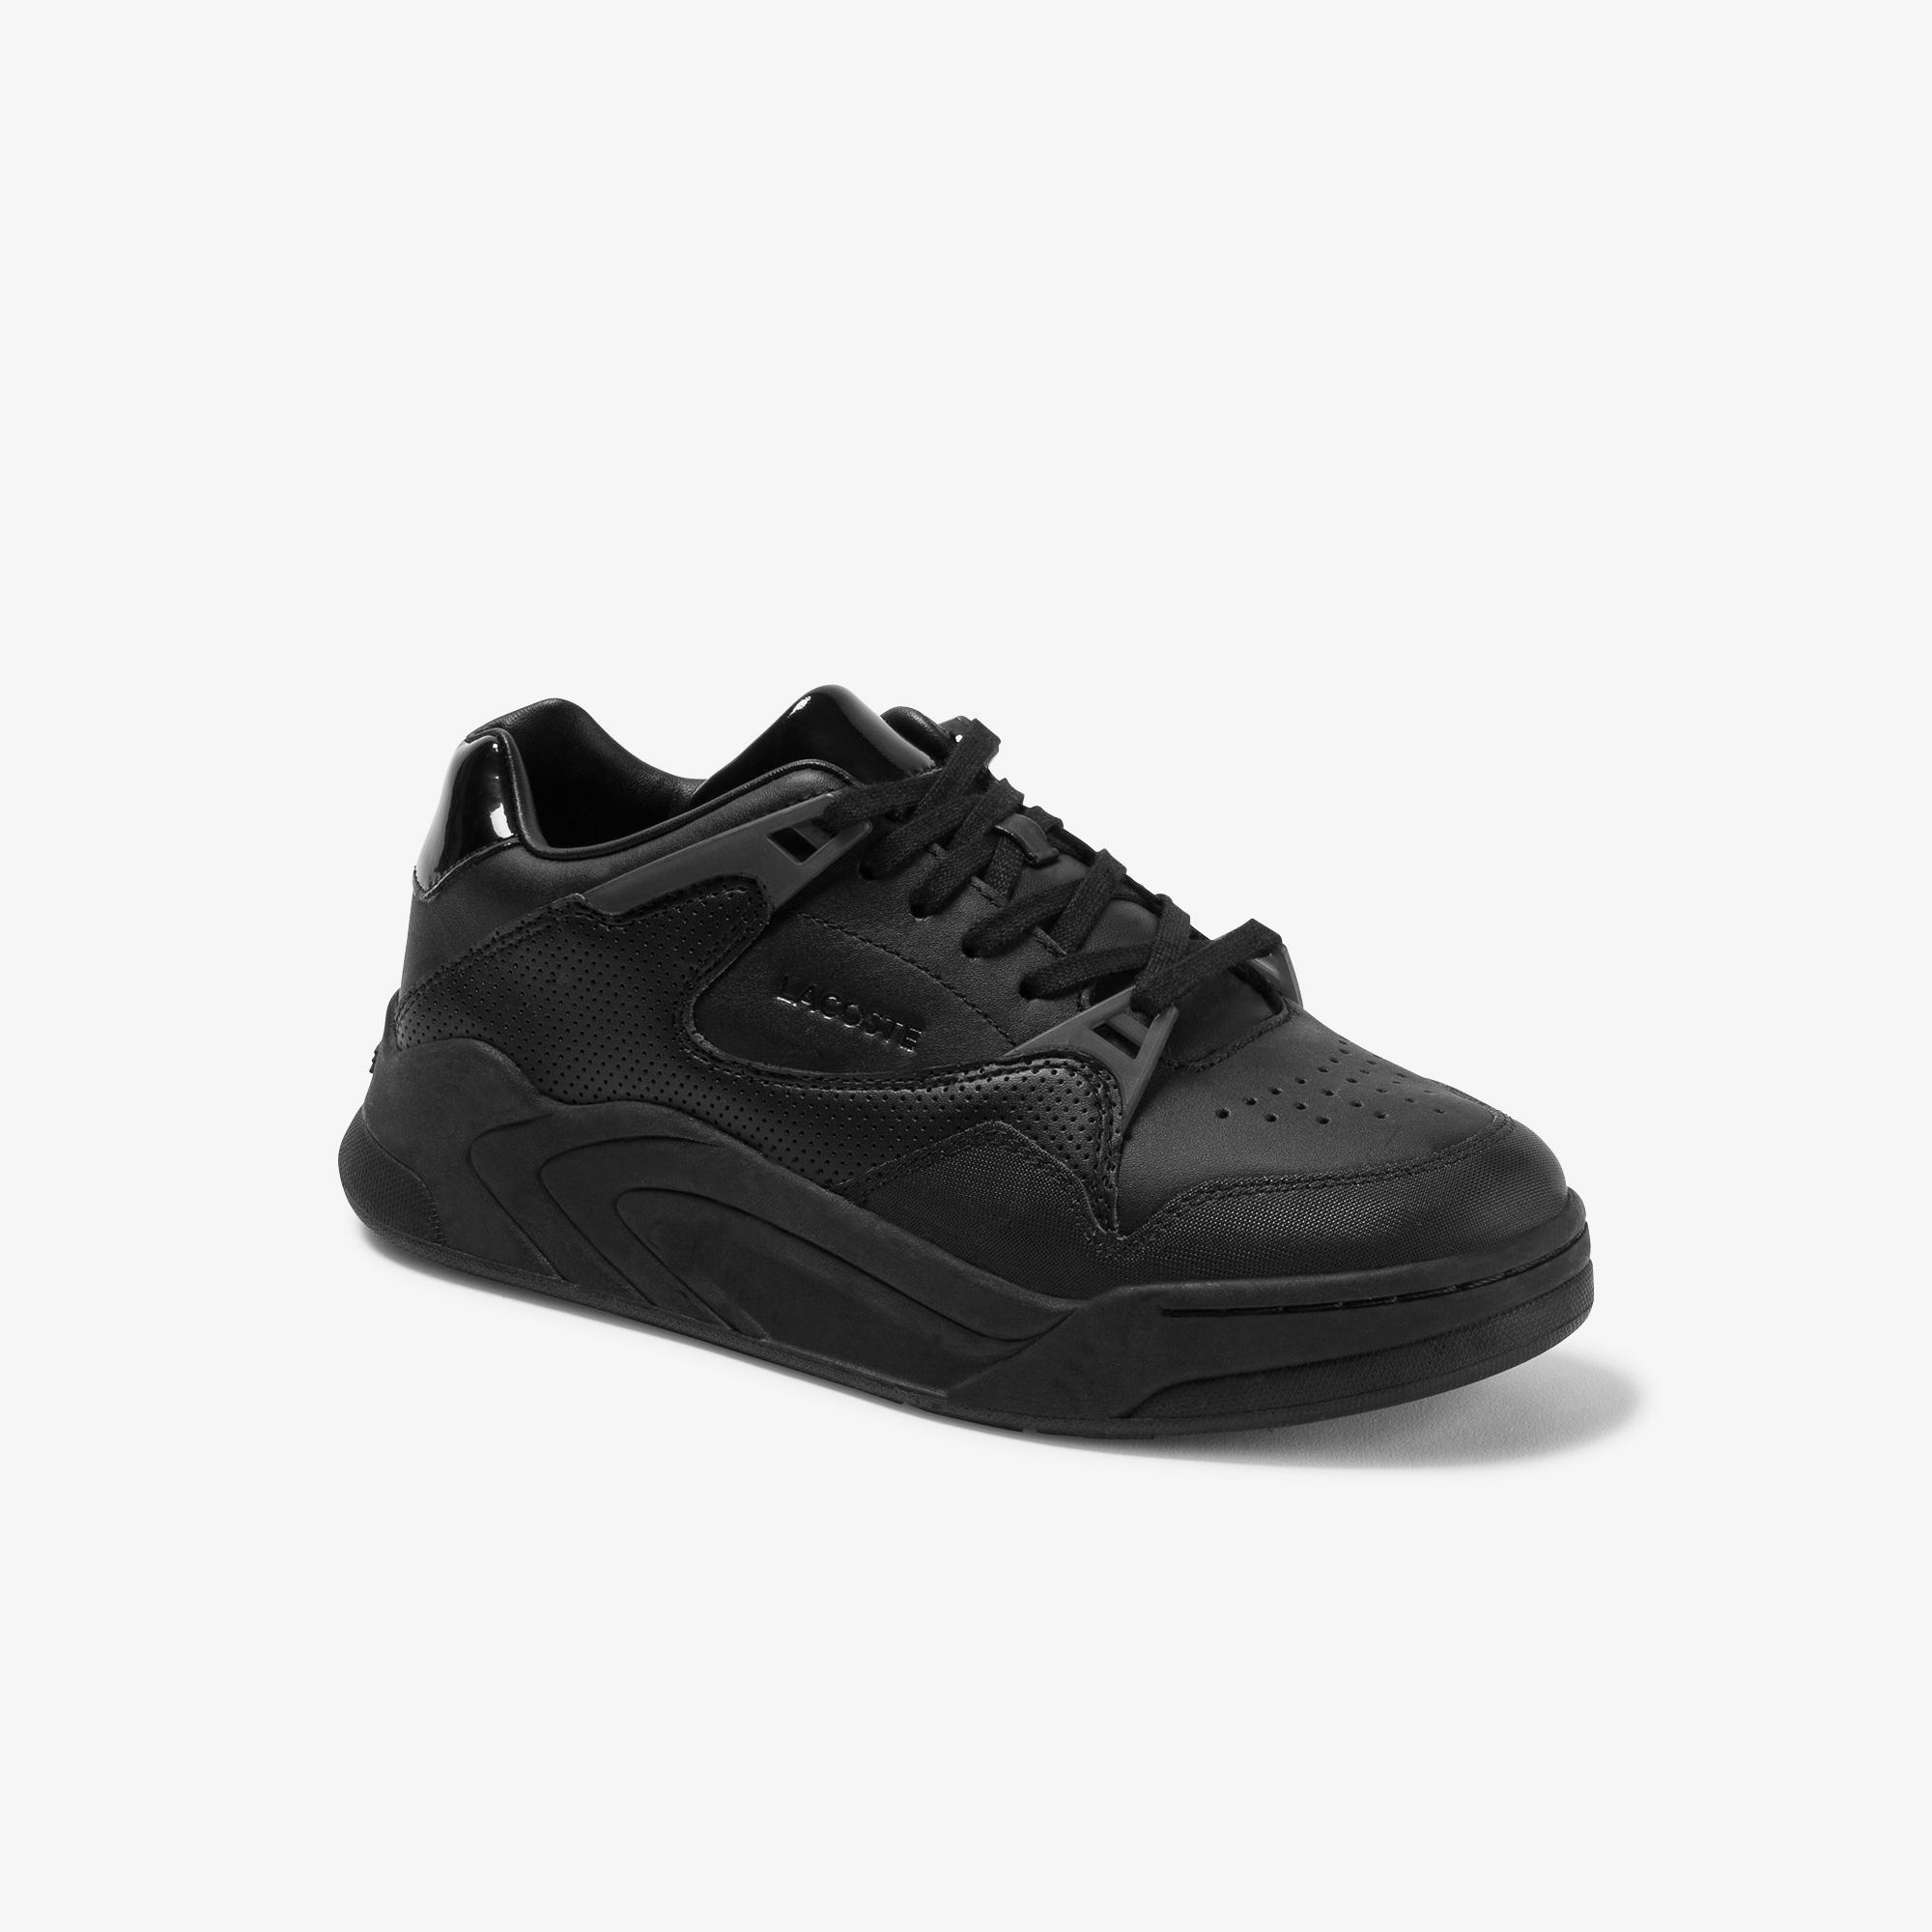 Lacoste Court Slam 120 1 Damskie Sneakersy